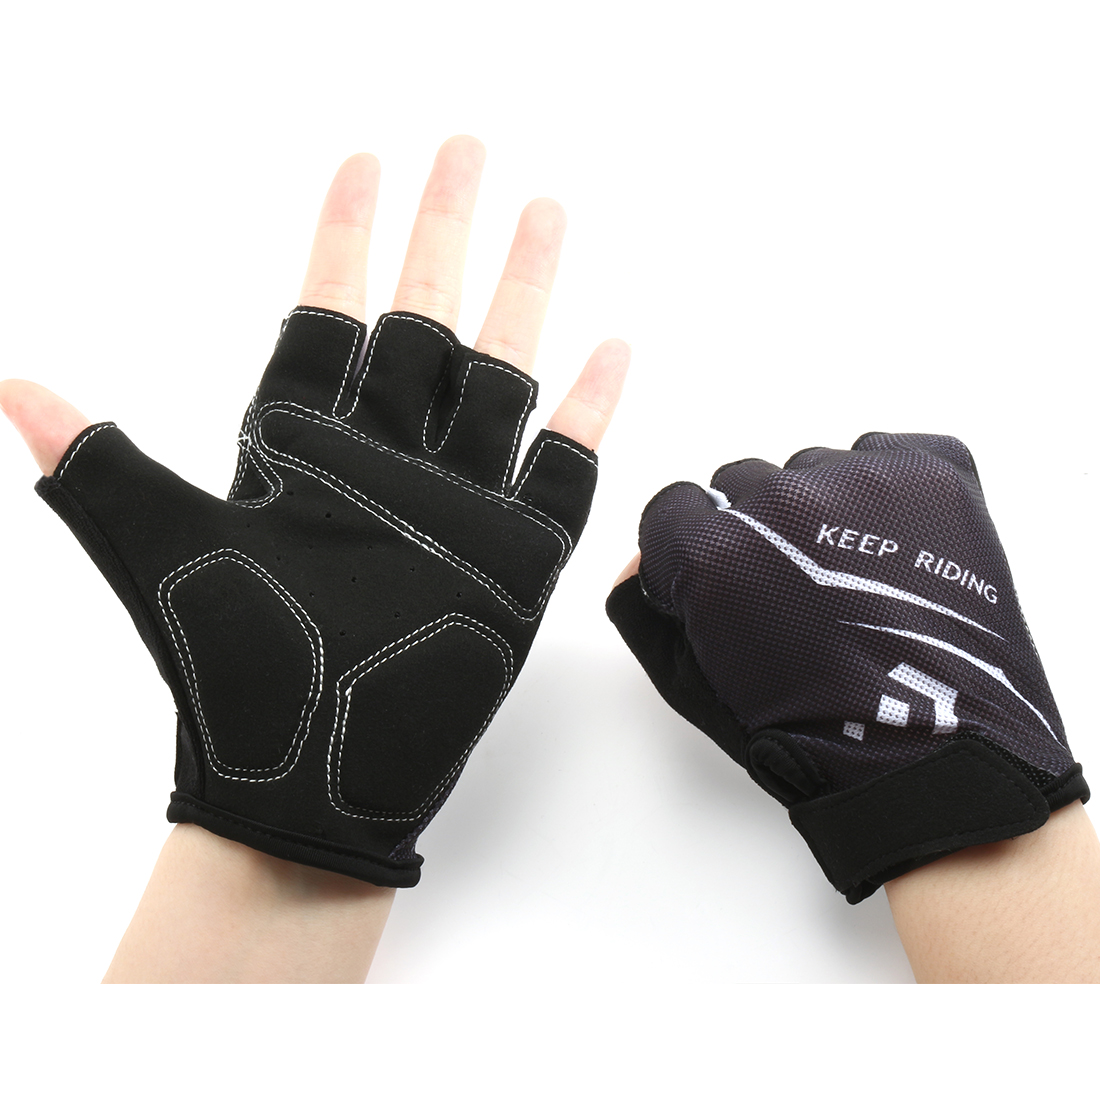 Outdoor Elasticized Fabric Sports Exercise Half Finger Cycling Gloves Palm Support Pair (White S)